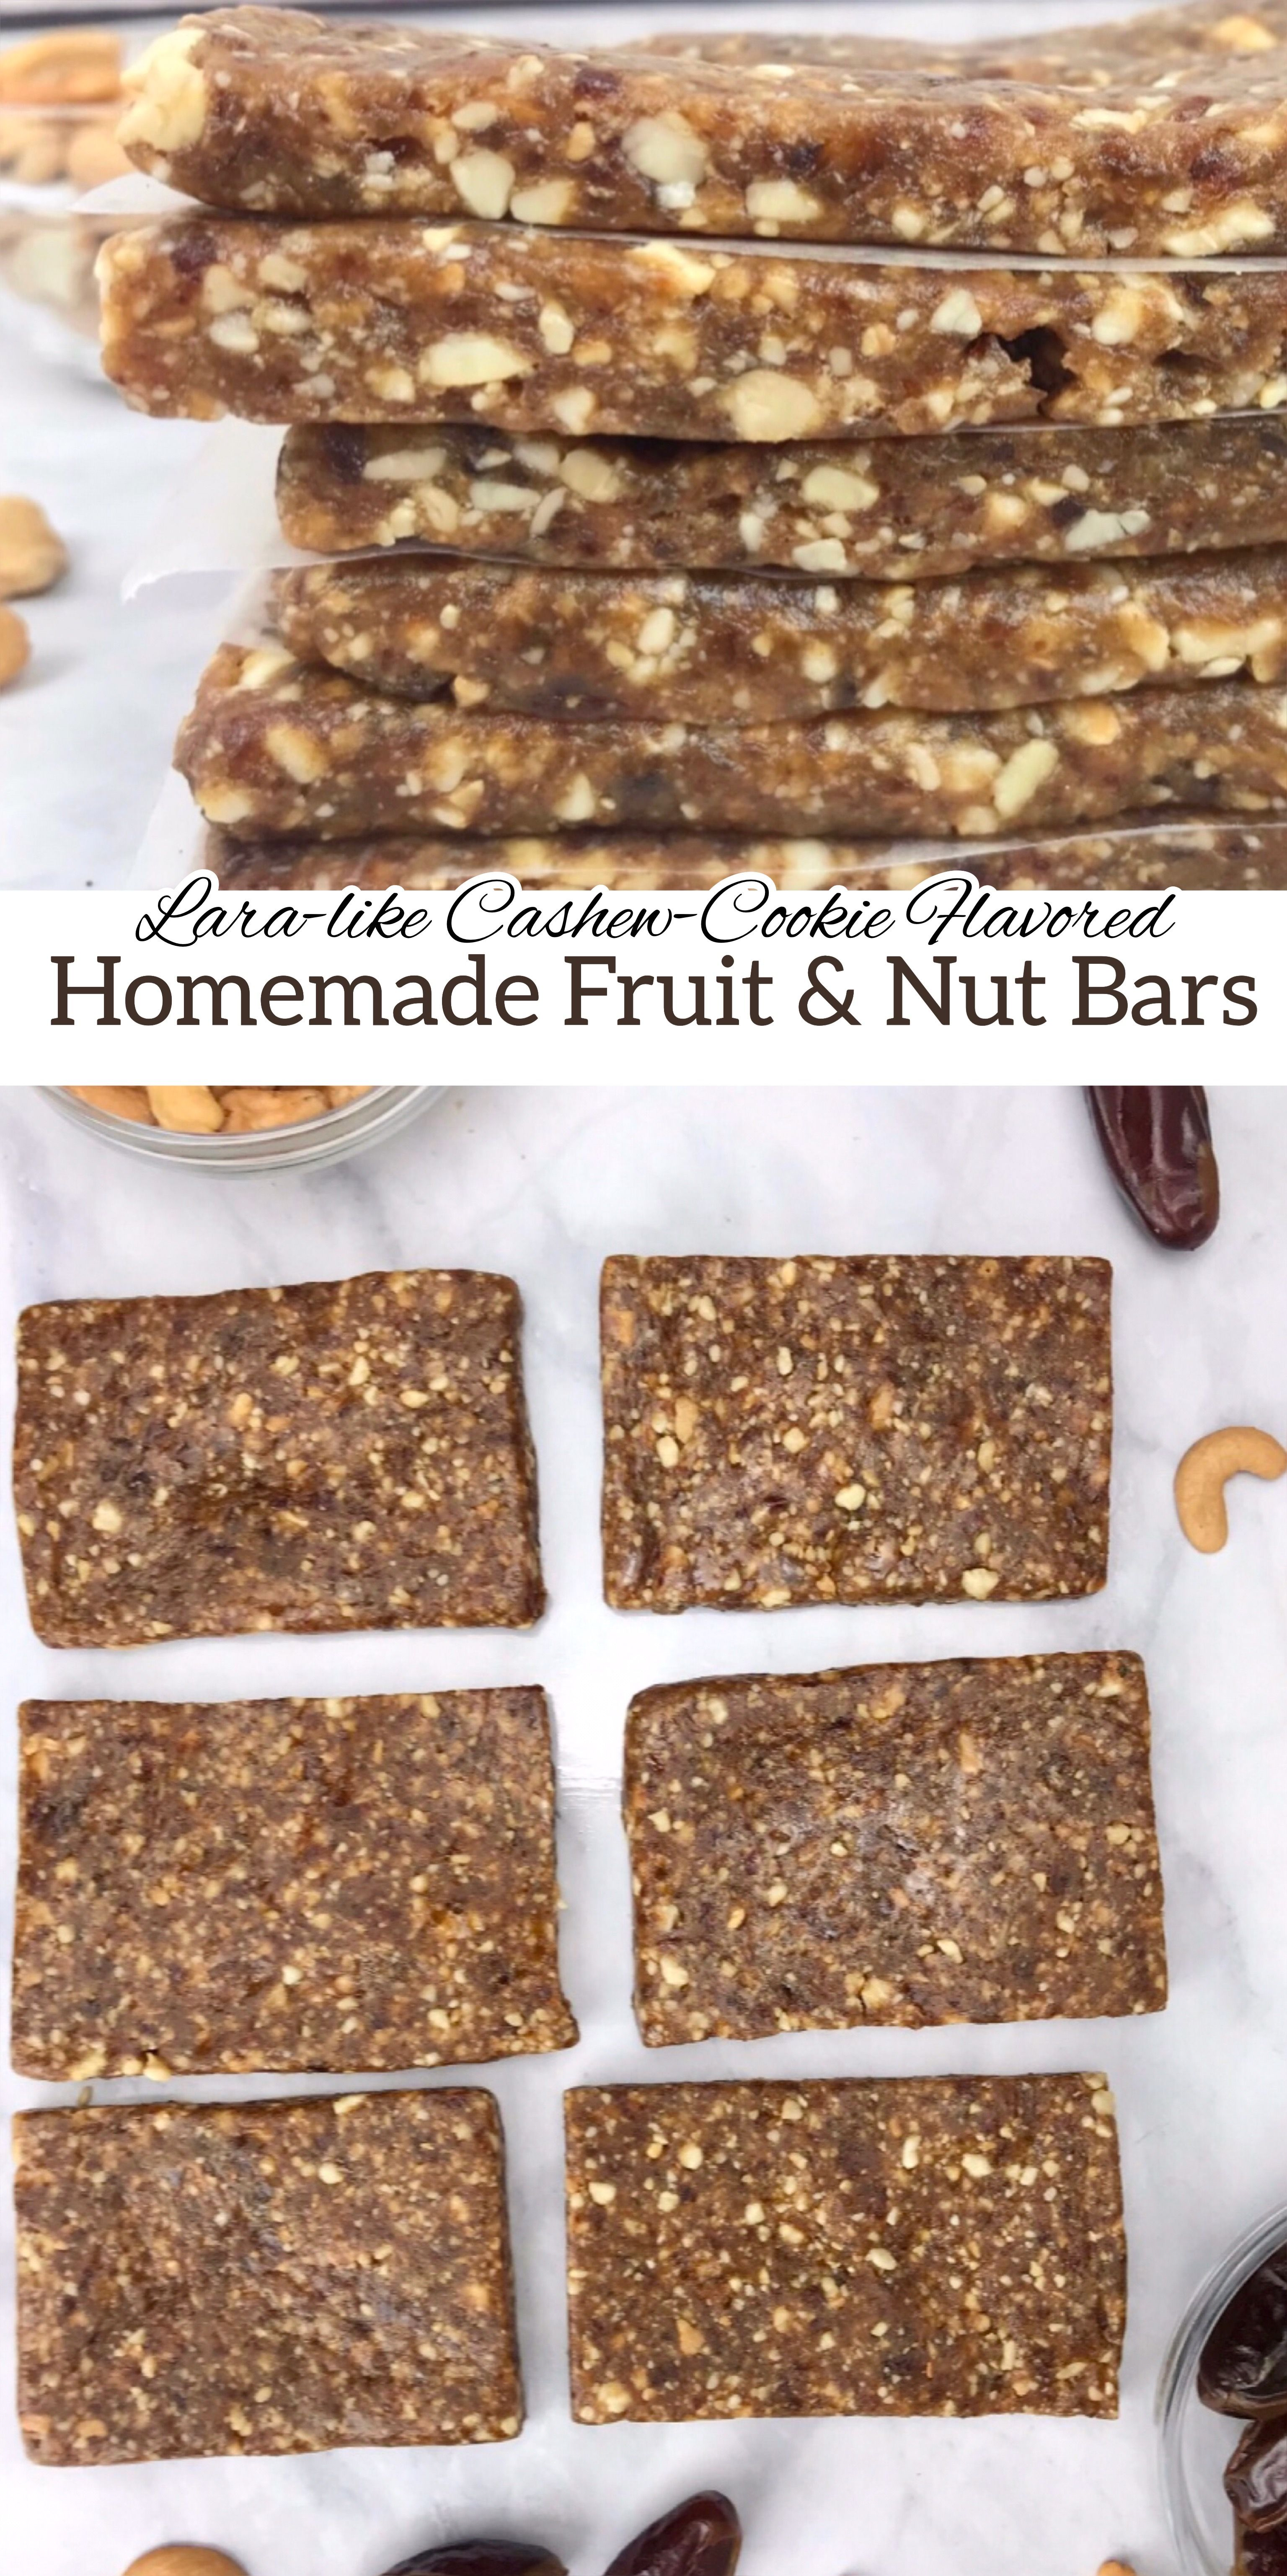 Homemade Lara Like Fruit Nut Bars Cashew Cookie Flavor Heather Mangieri Nutrition Recipe Fruit And Nut Bars Healthy Snack Bars No Cook Desserts